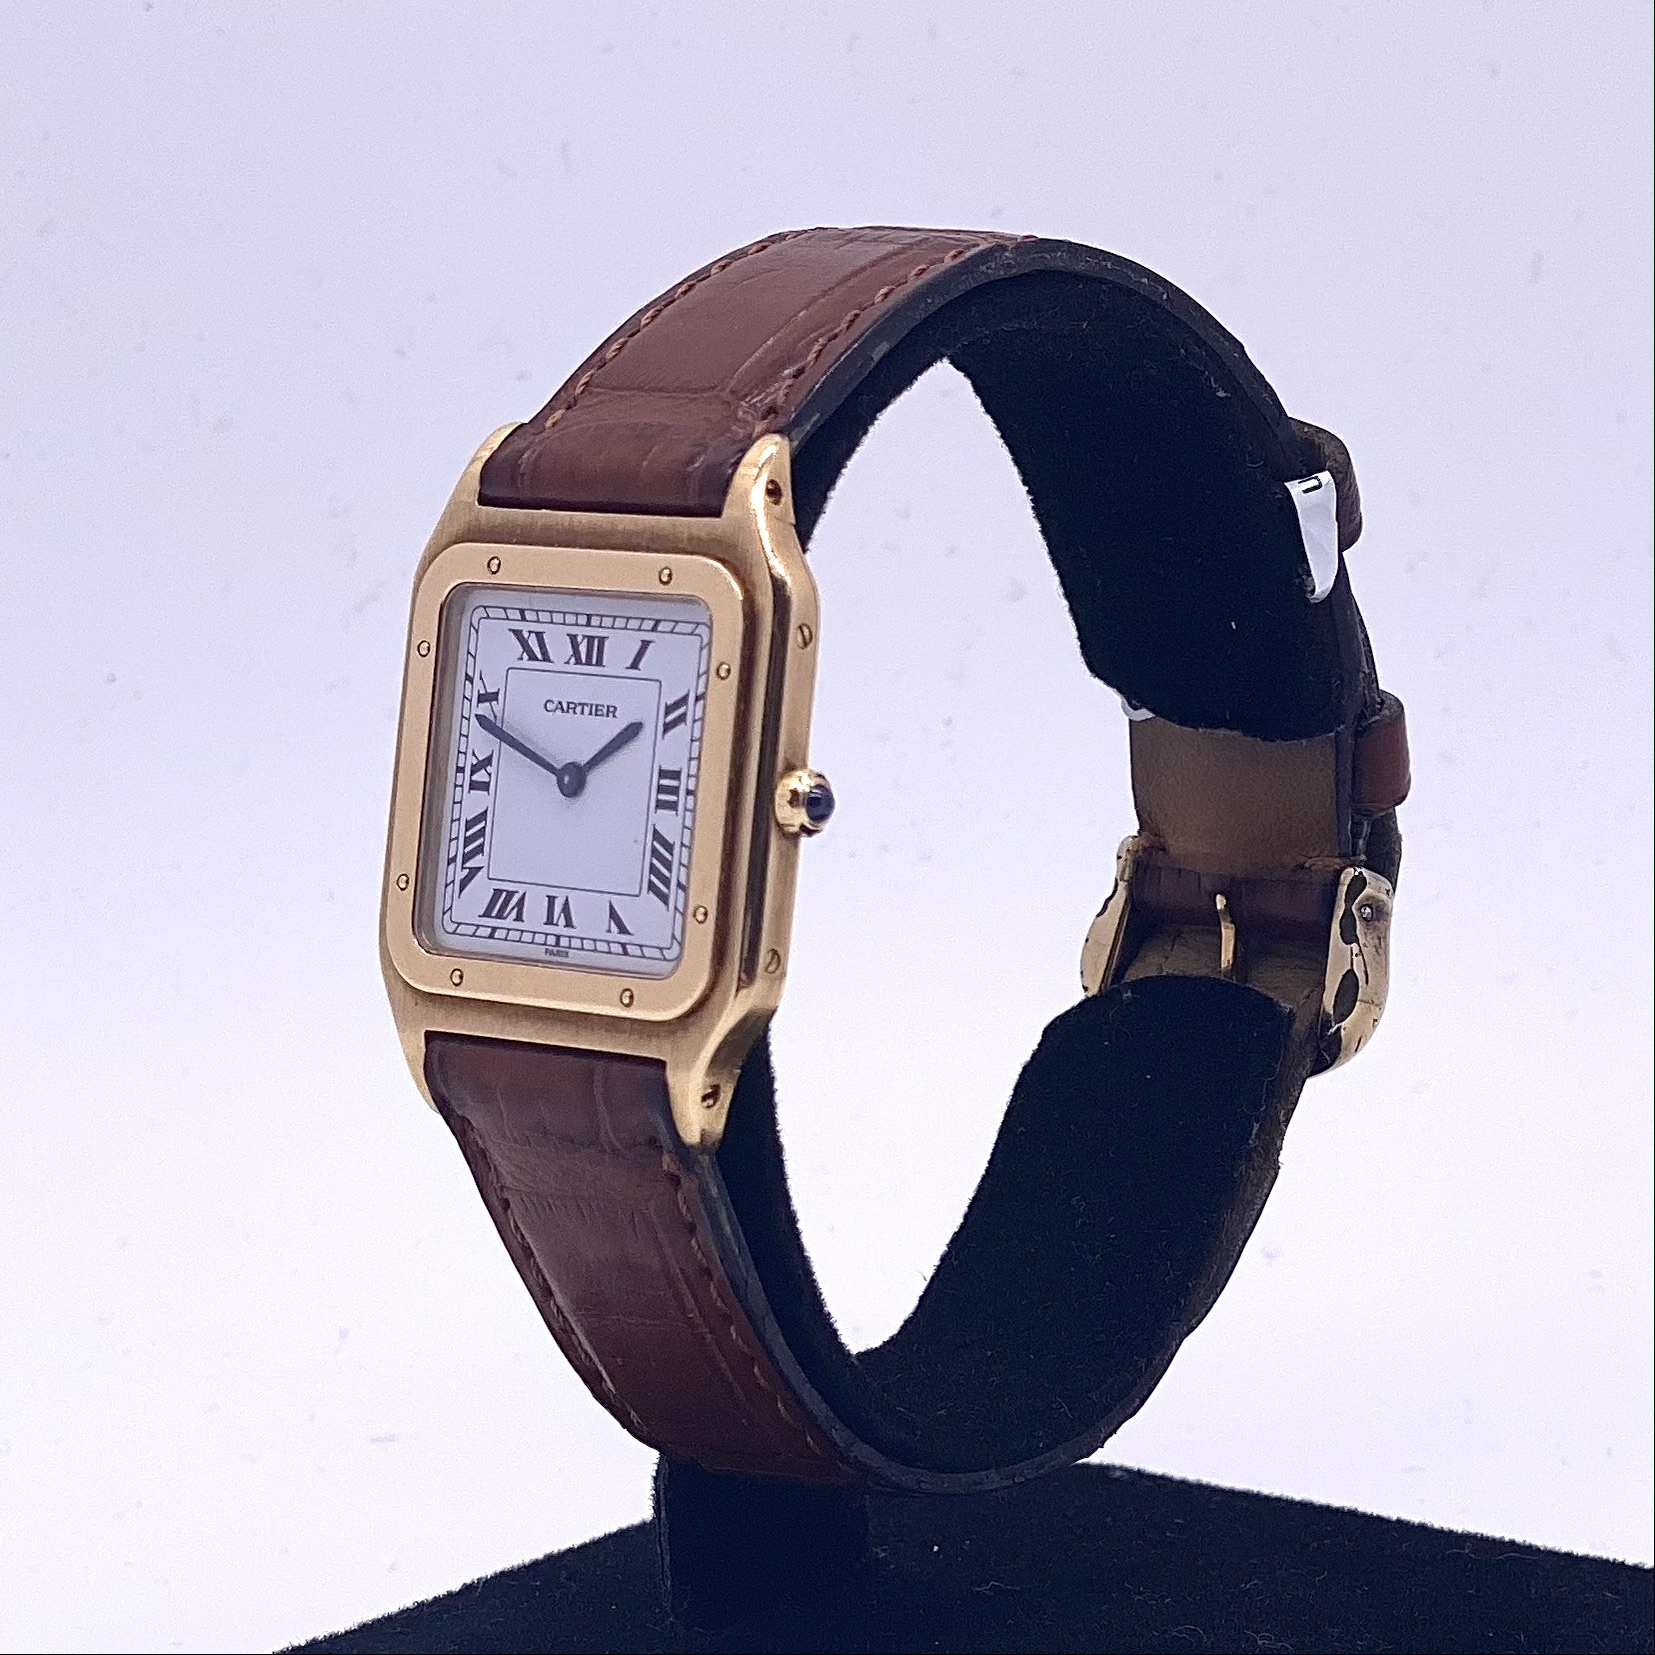 Cartier 18ct Santos Dumont Ultra Thin - Image 2 of 3